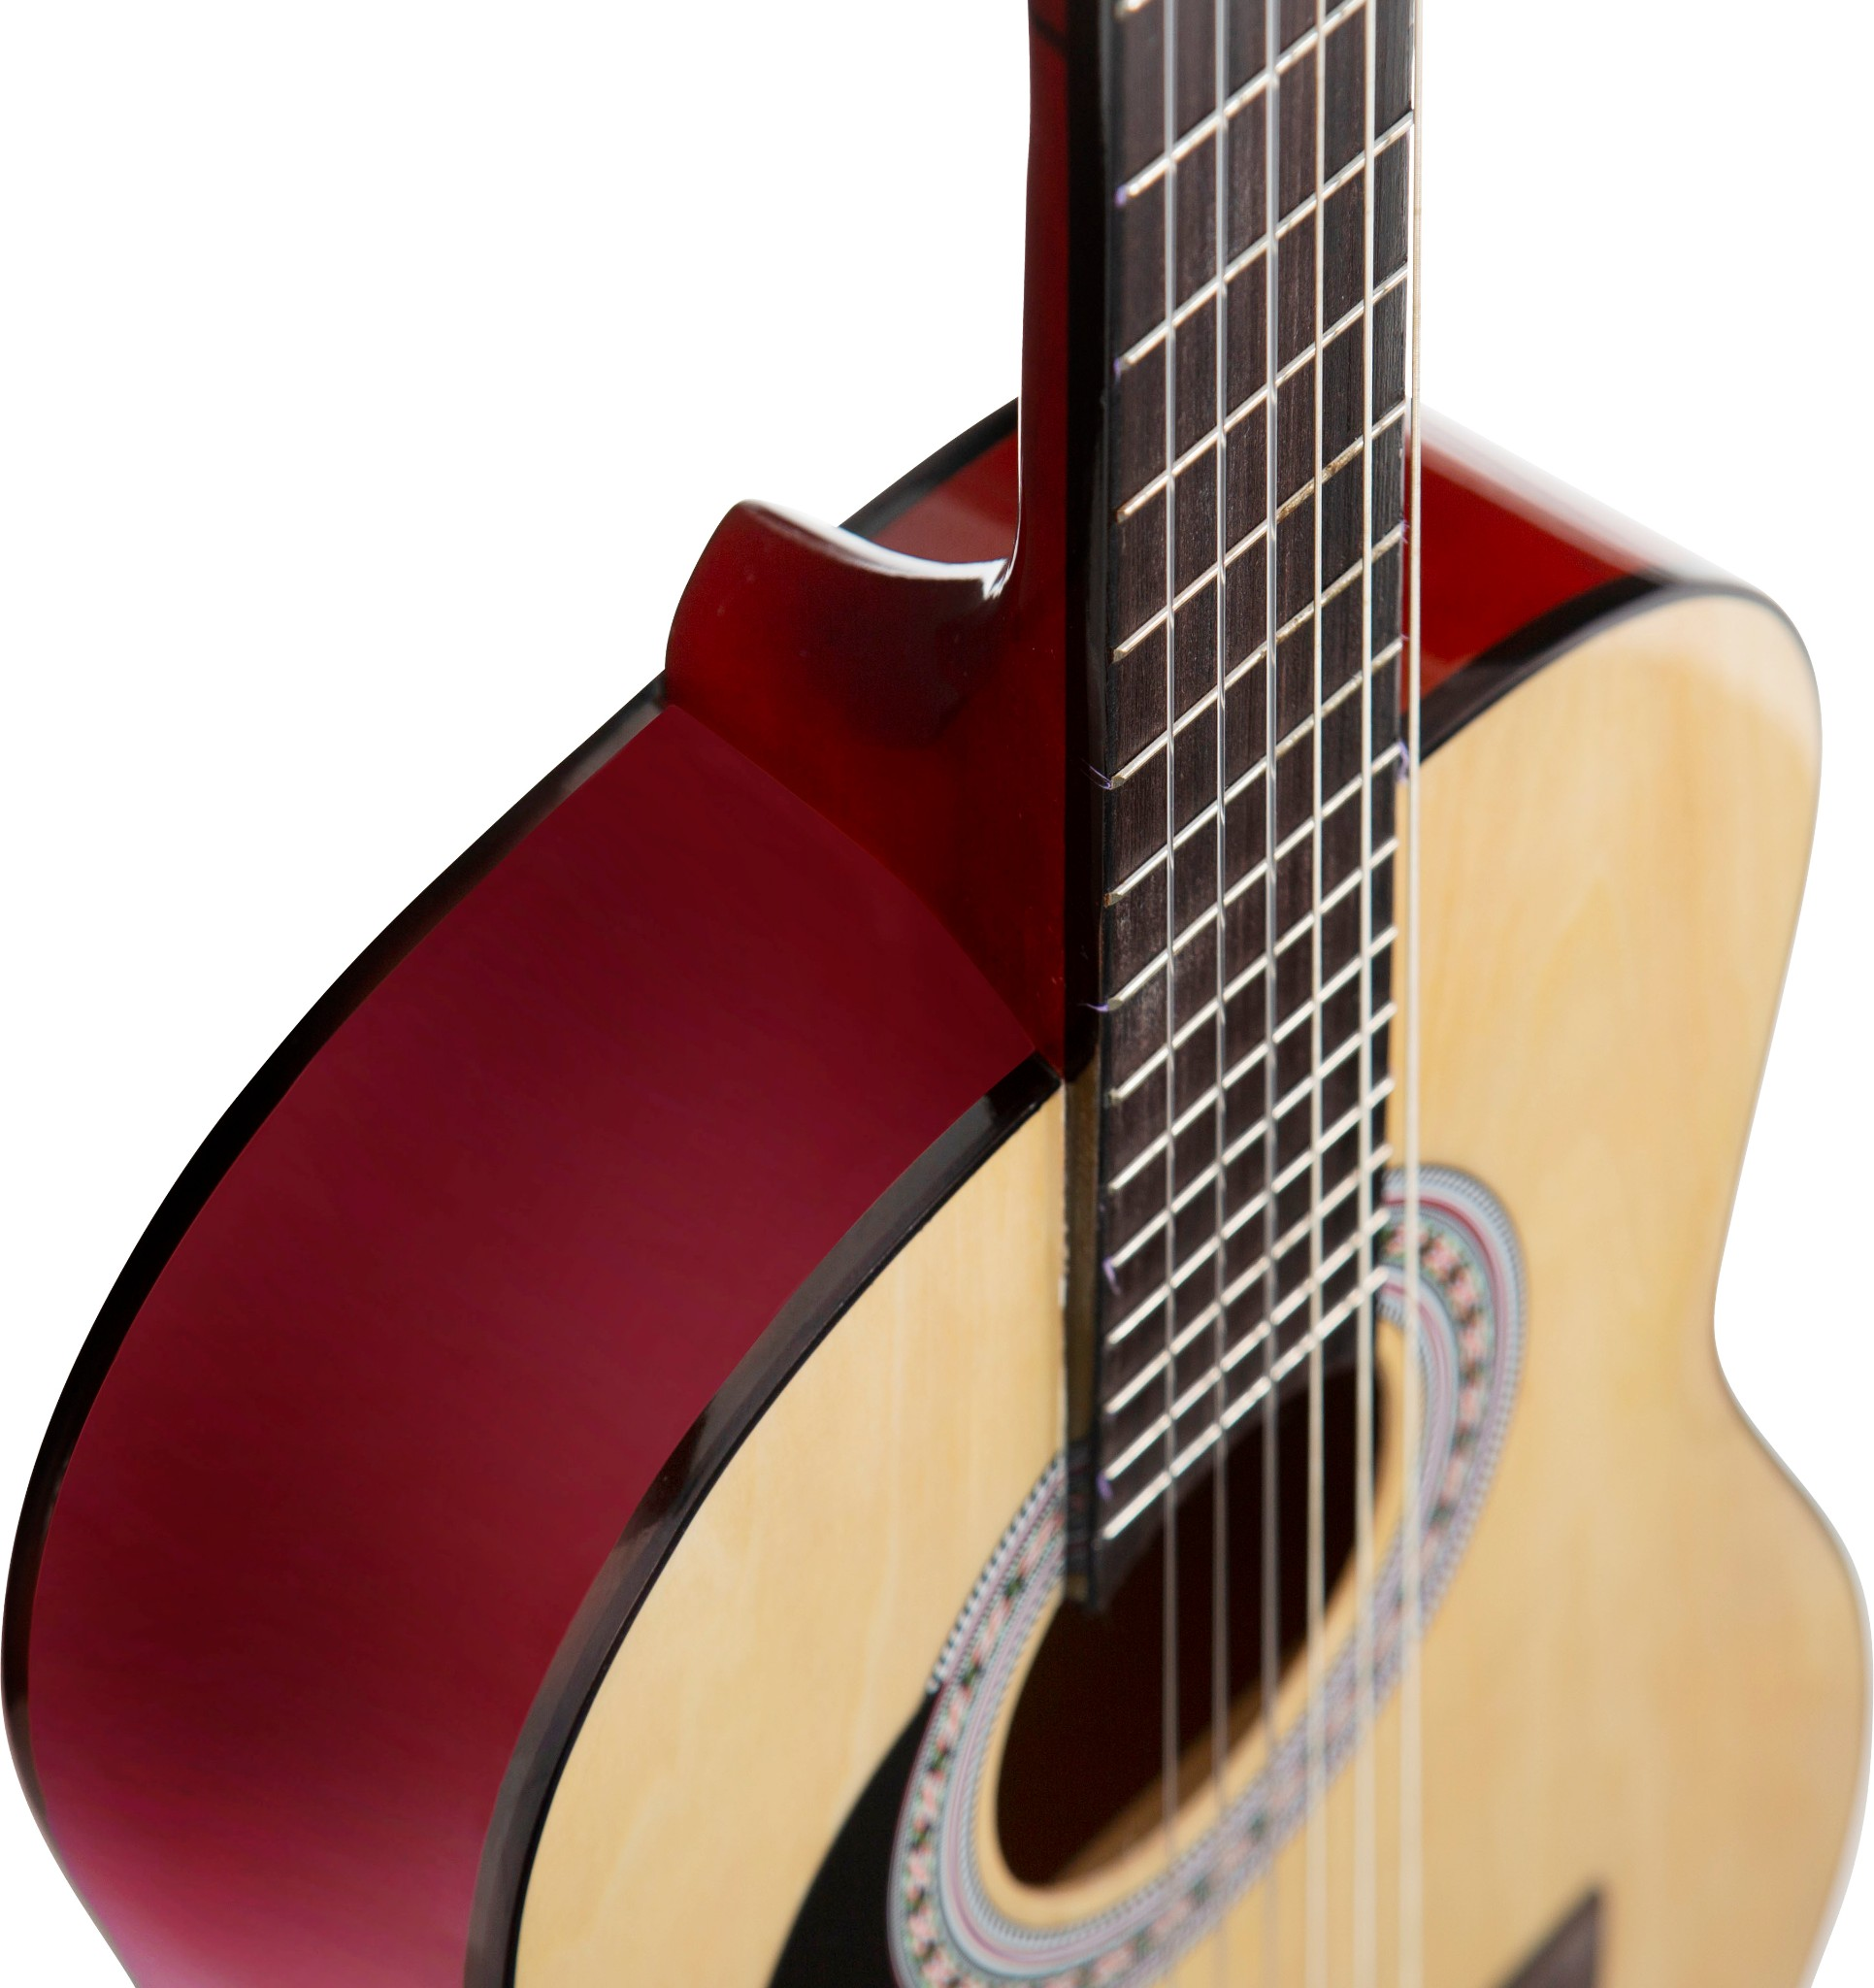 Details about Stretton Payne LEFT HANDED Children's 3/4 Size, Nylon String  Classical Guitar